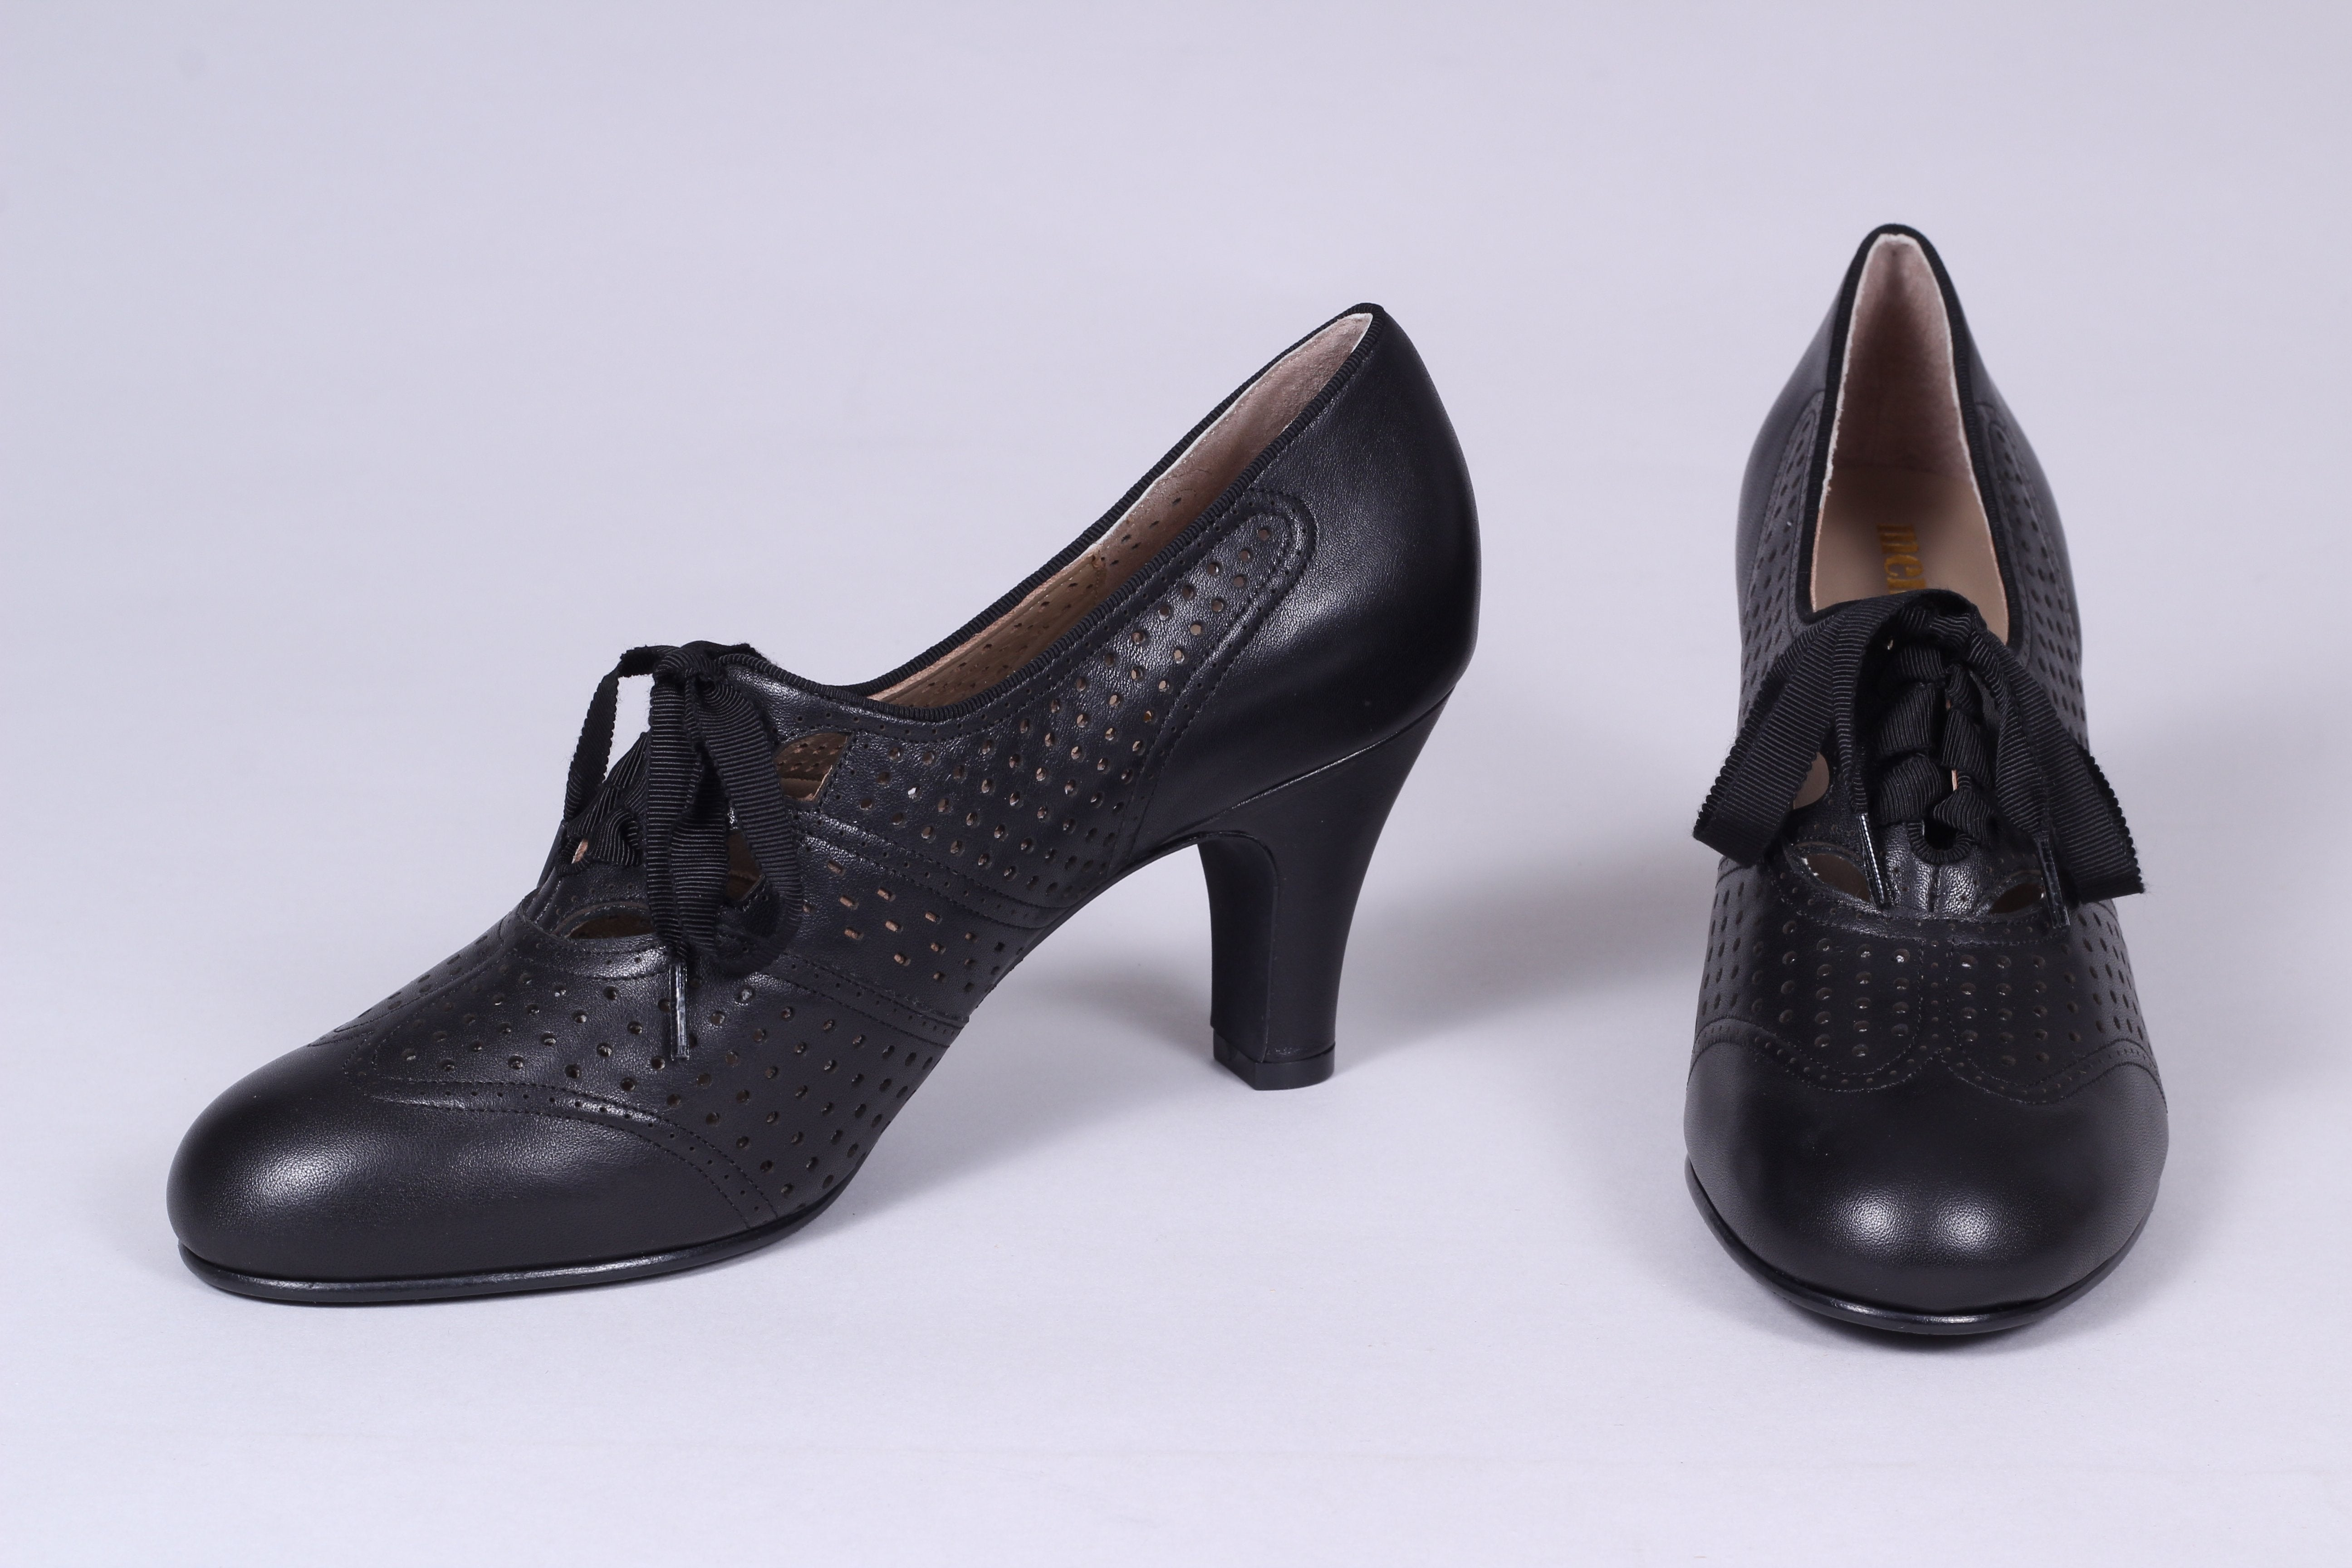 1930s everyday oxford high heel shoes, black, Marie